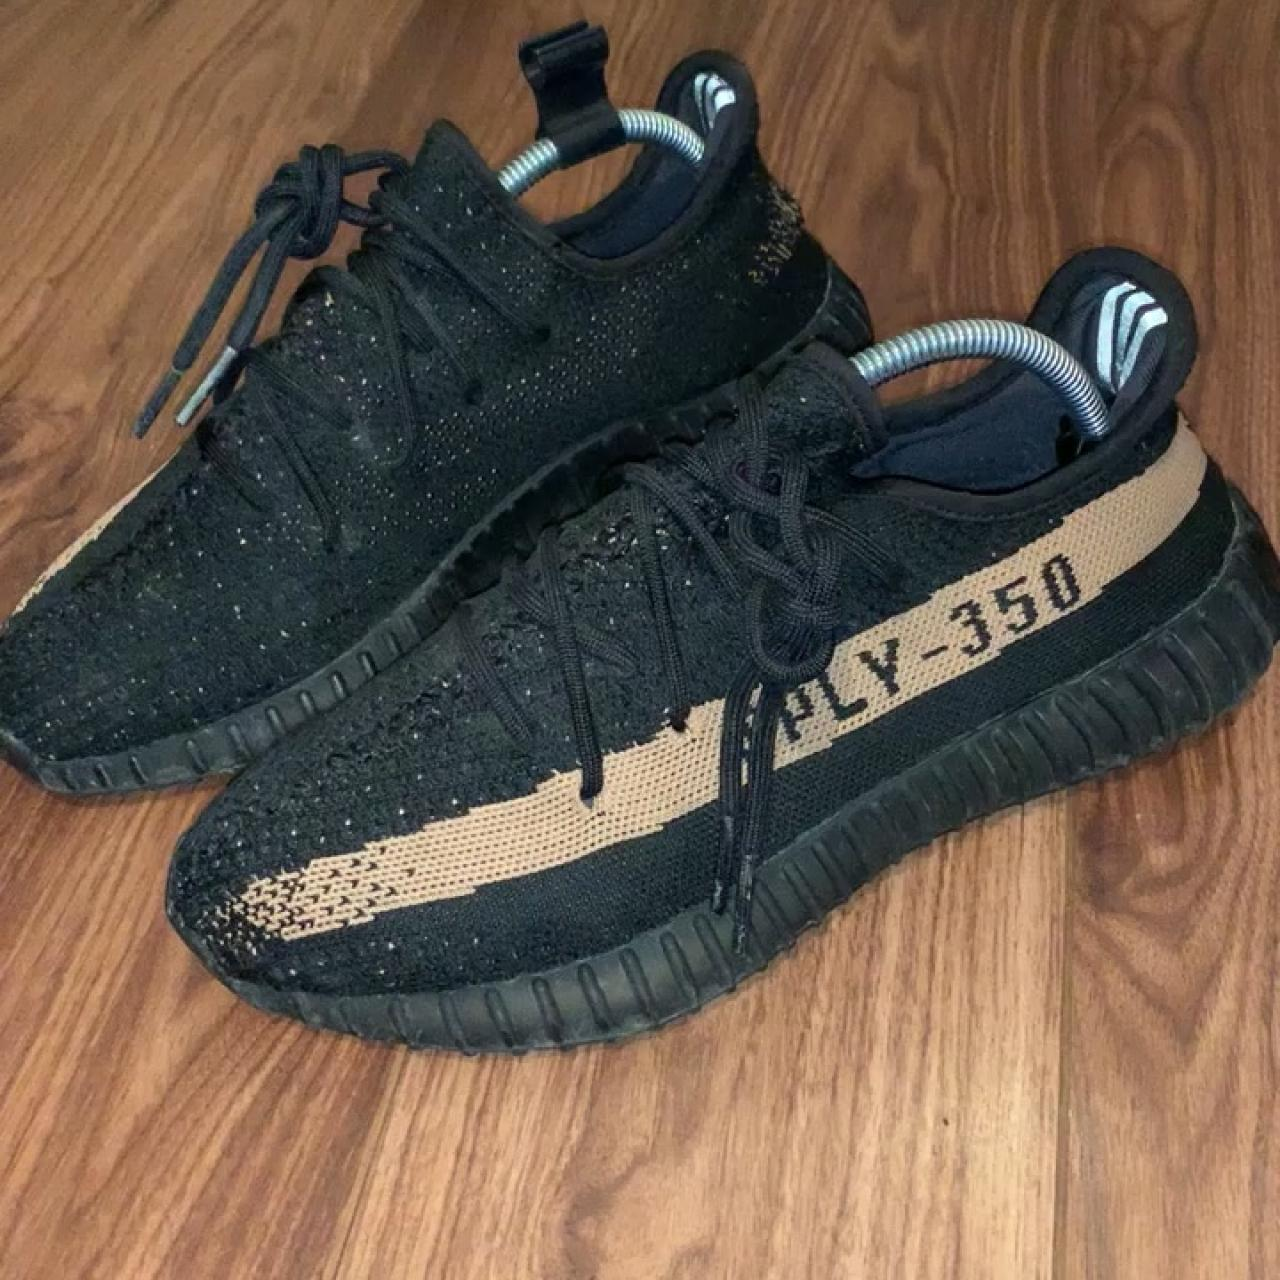 c7ba4e3e5 YEEZY 350 BOOST V2 COPPER UK SIZE 8.5 USED Small signs of on - Depop